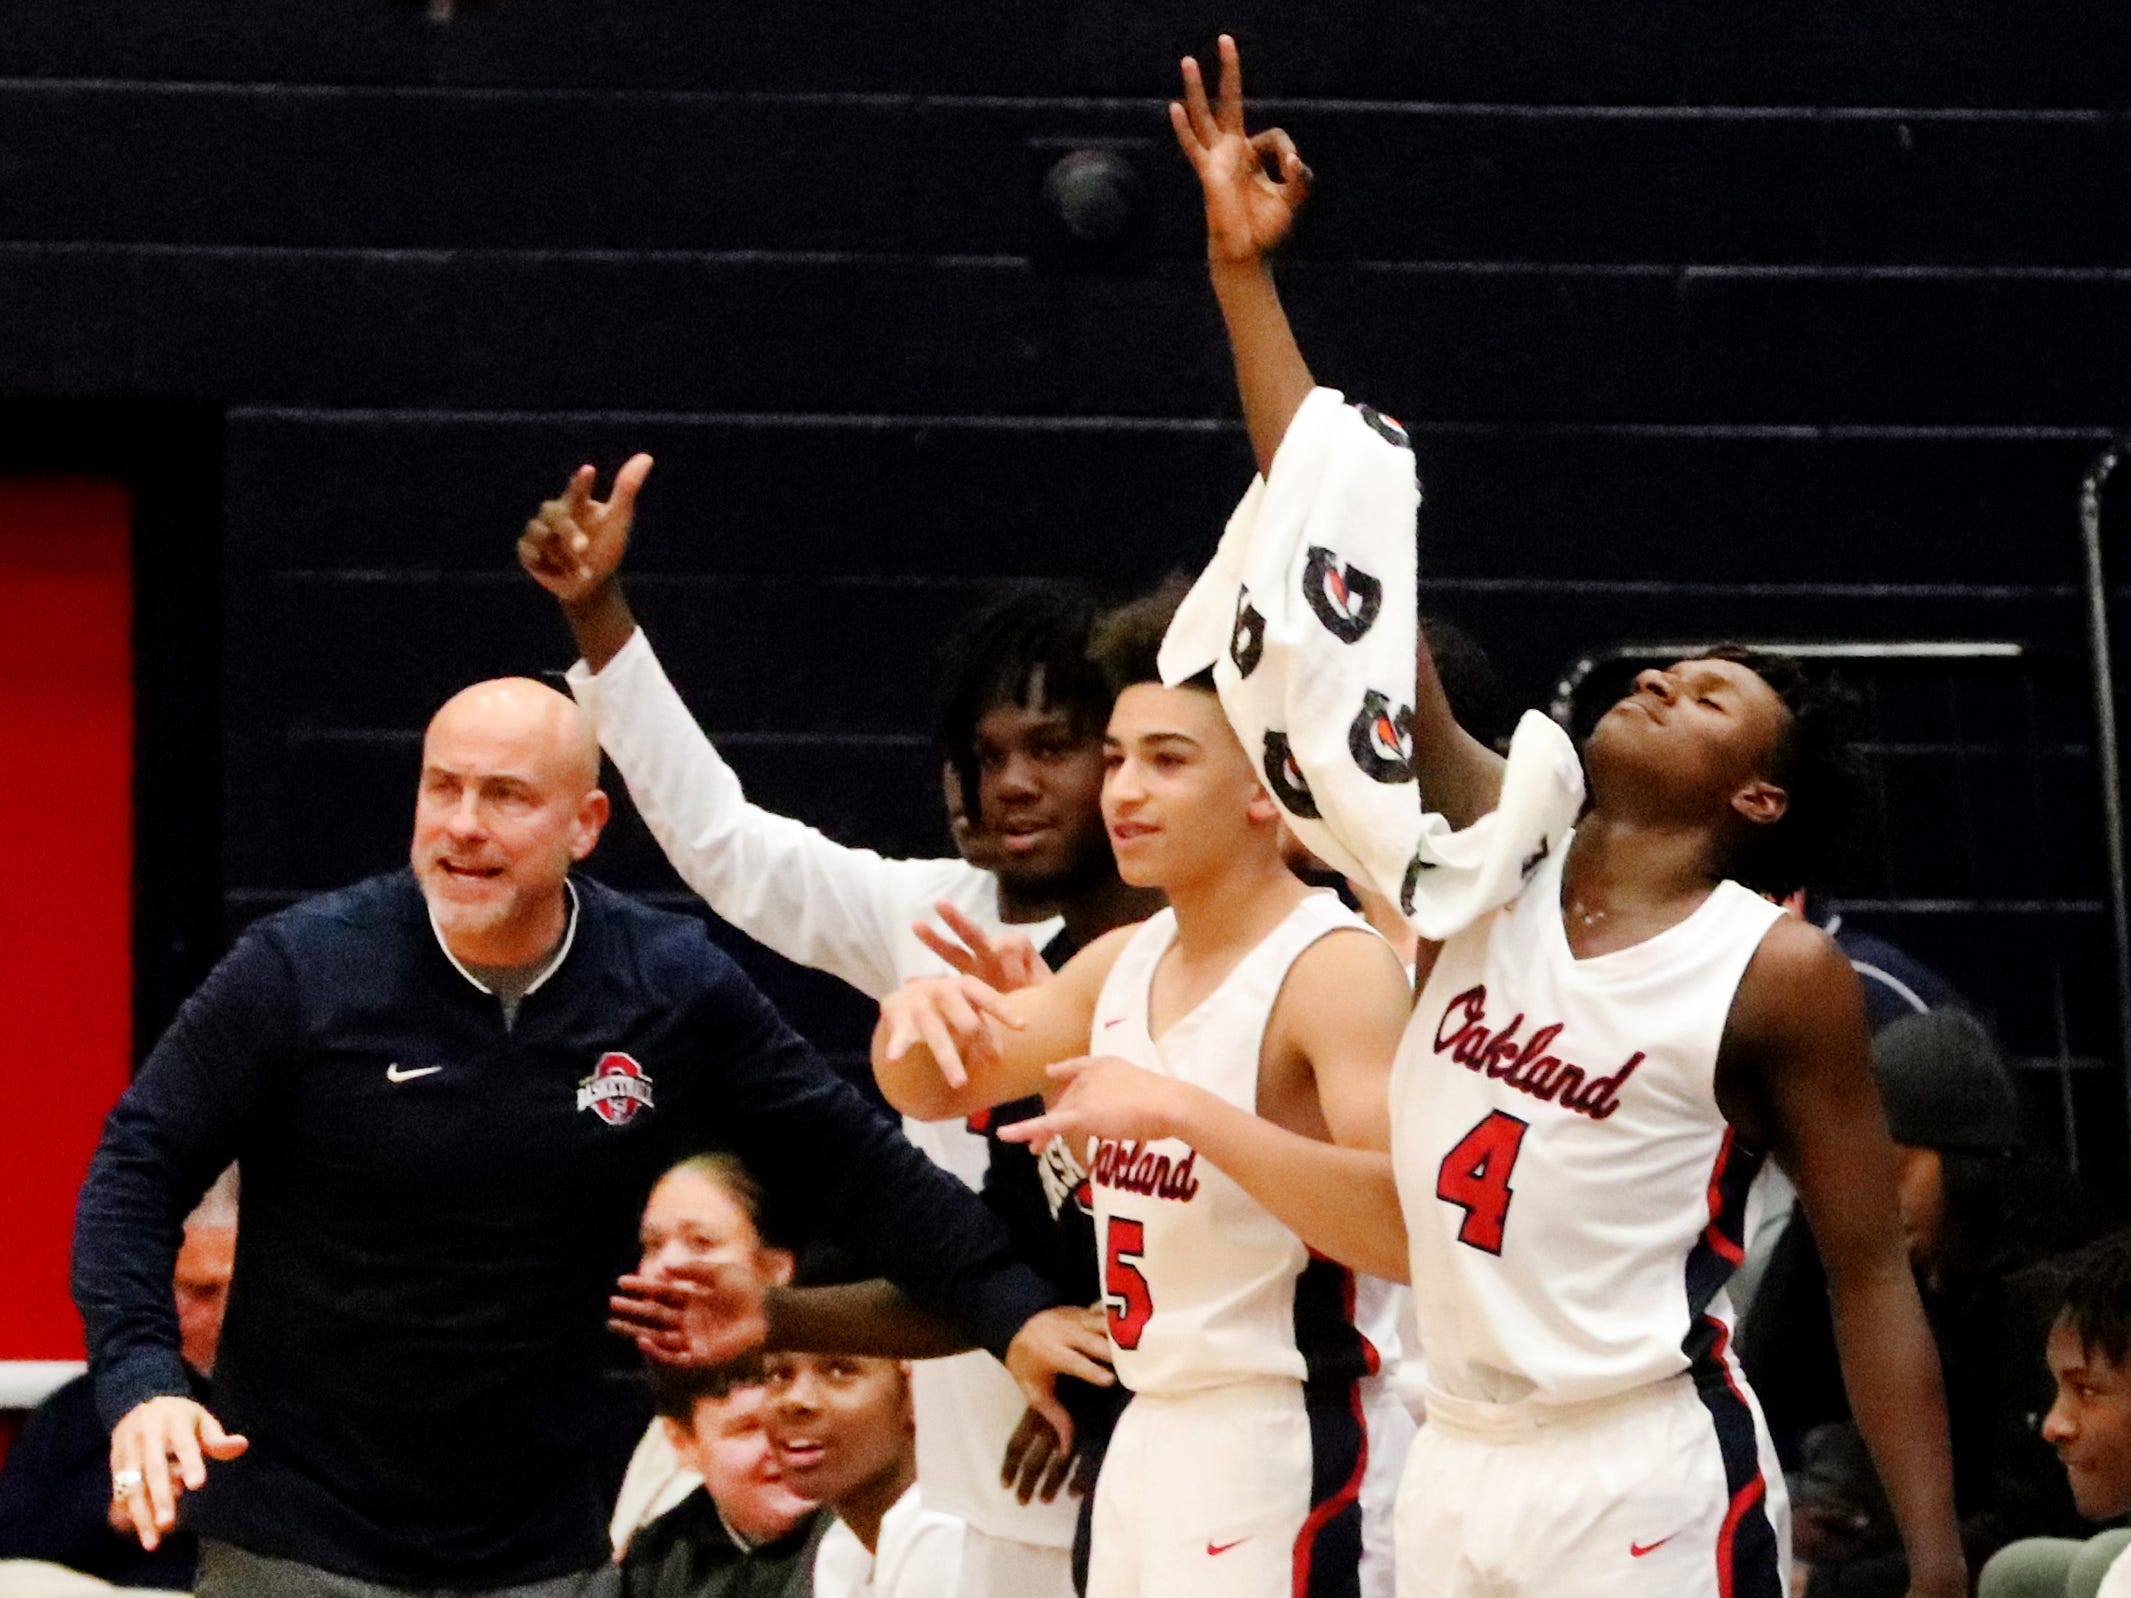 Oakland's head coach Troy Bond tries to calm the bench as they celebrate a player making a three point shot against Siegel on Tuesday, Dec.. 4, 2018.